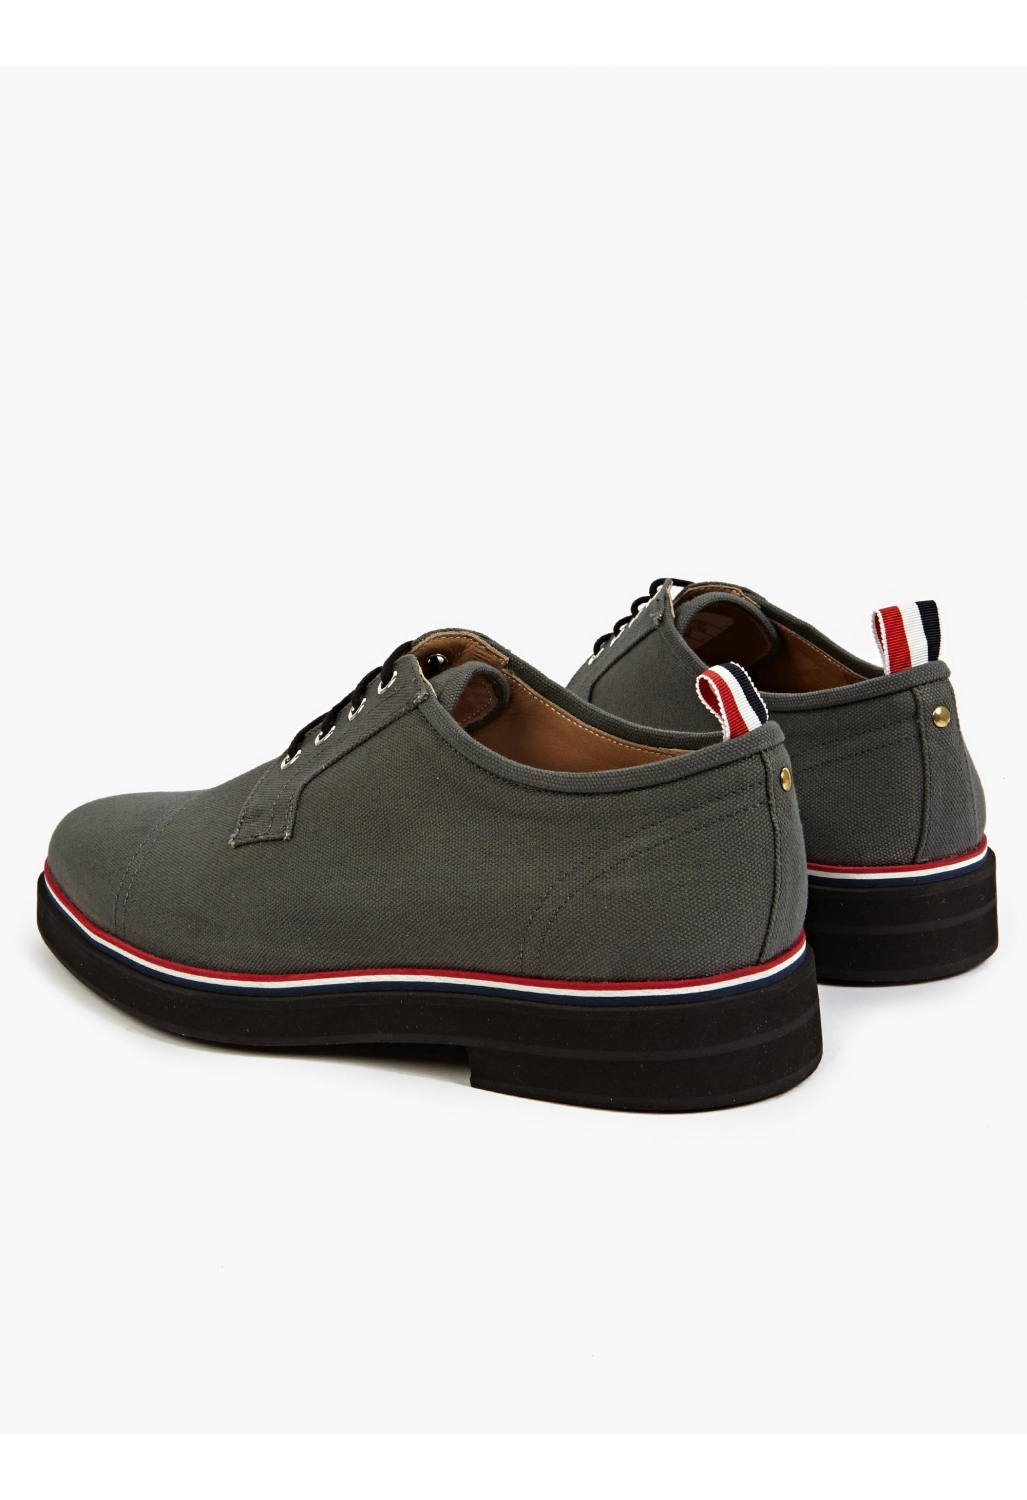 thom browne men s grey cotton canvas shoes in green for